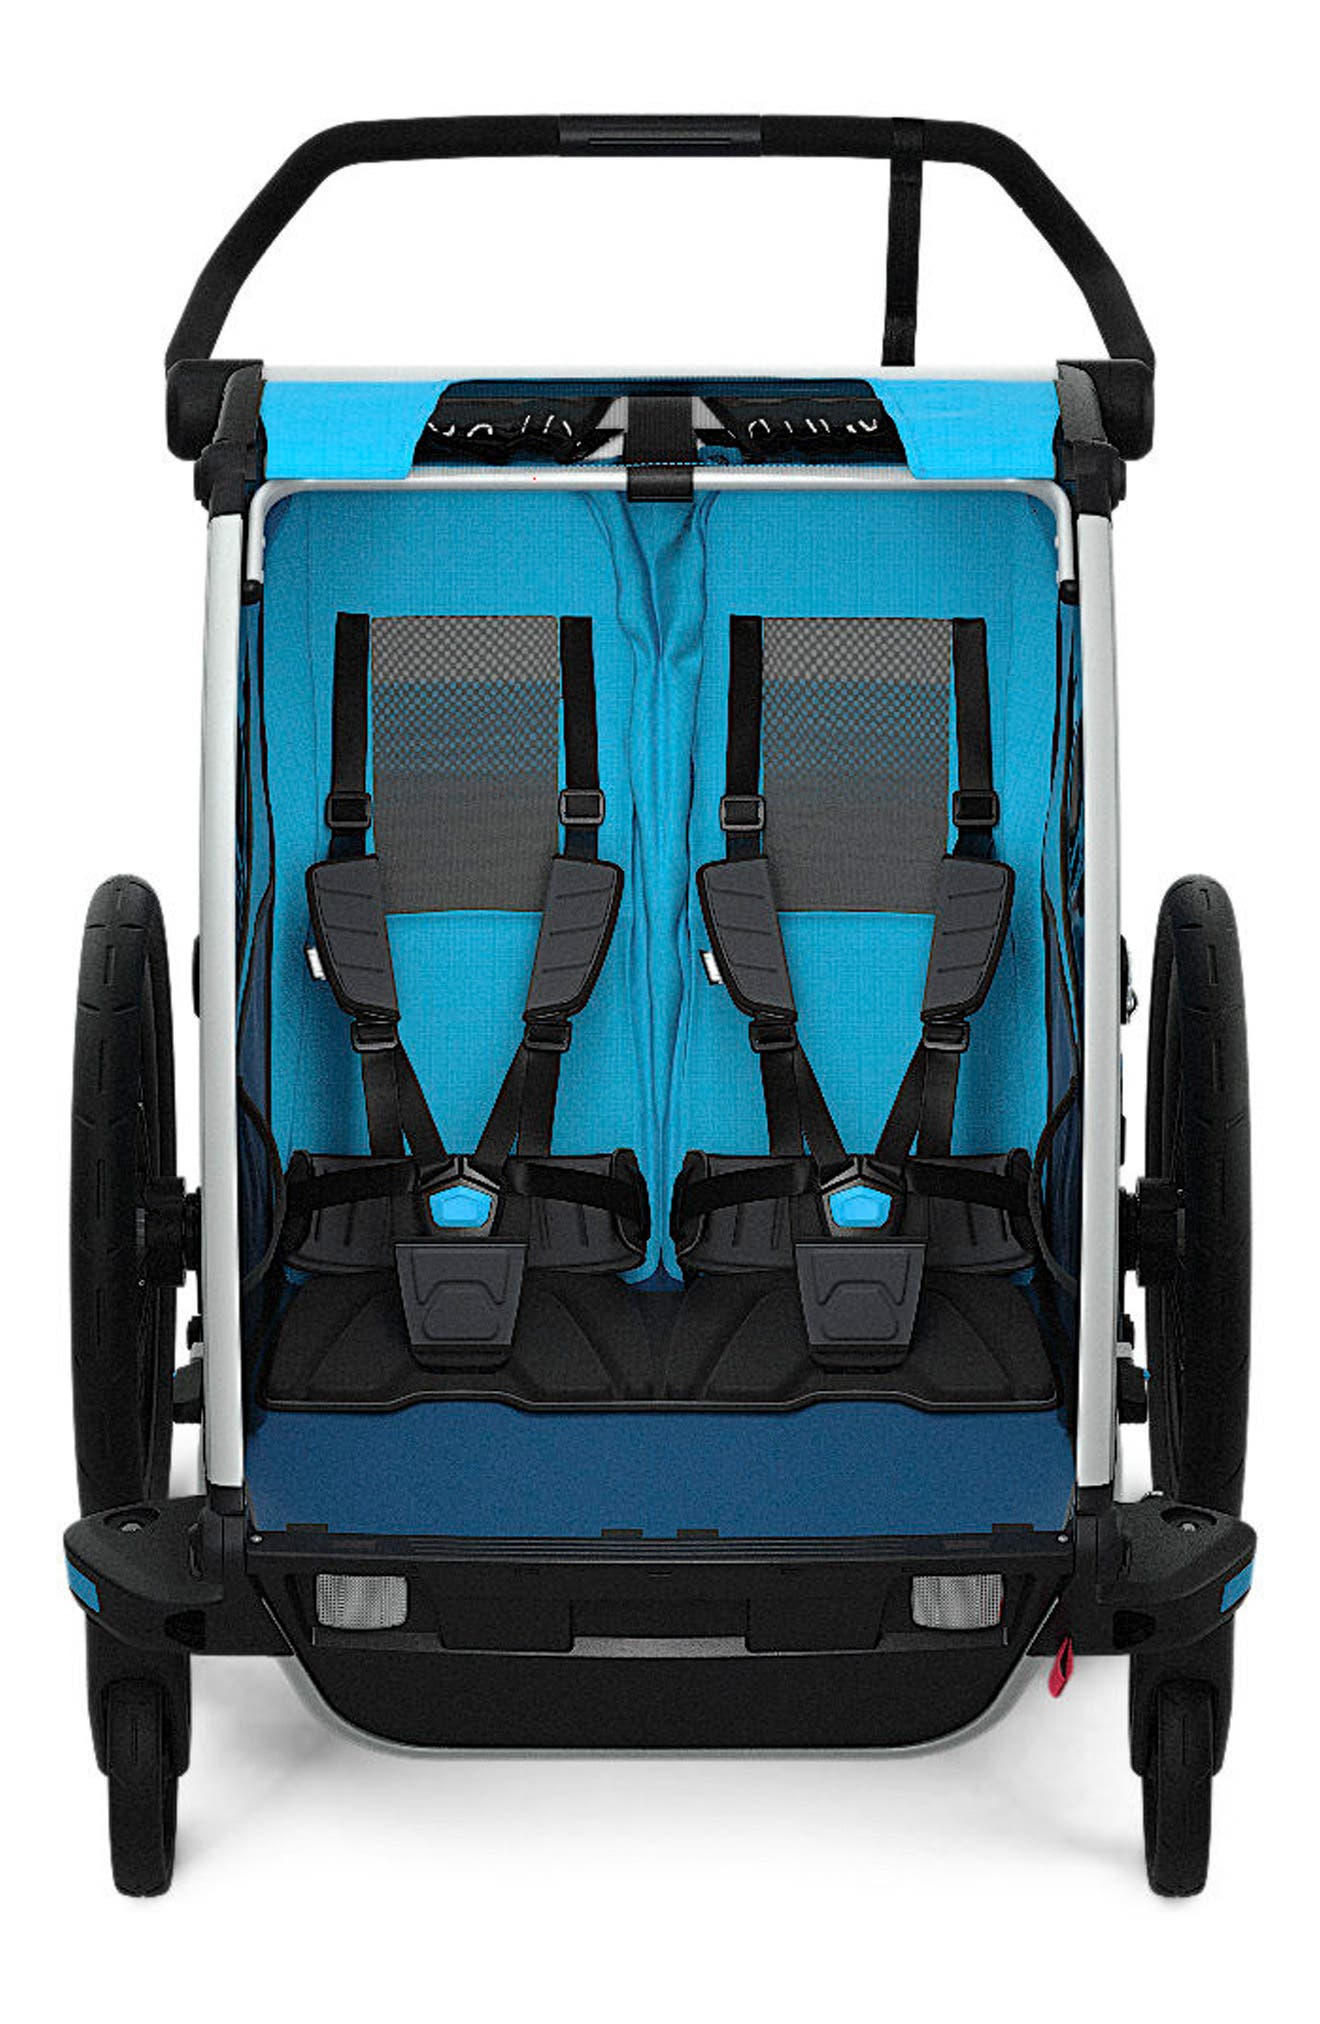 Chariot Cross 2 Multisport Double Cycle Trailer/Stroller,                         Main,                         color, THULE BLUE